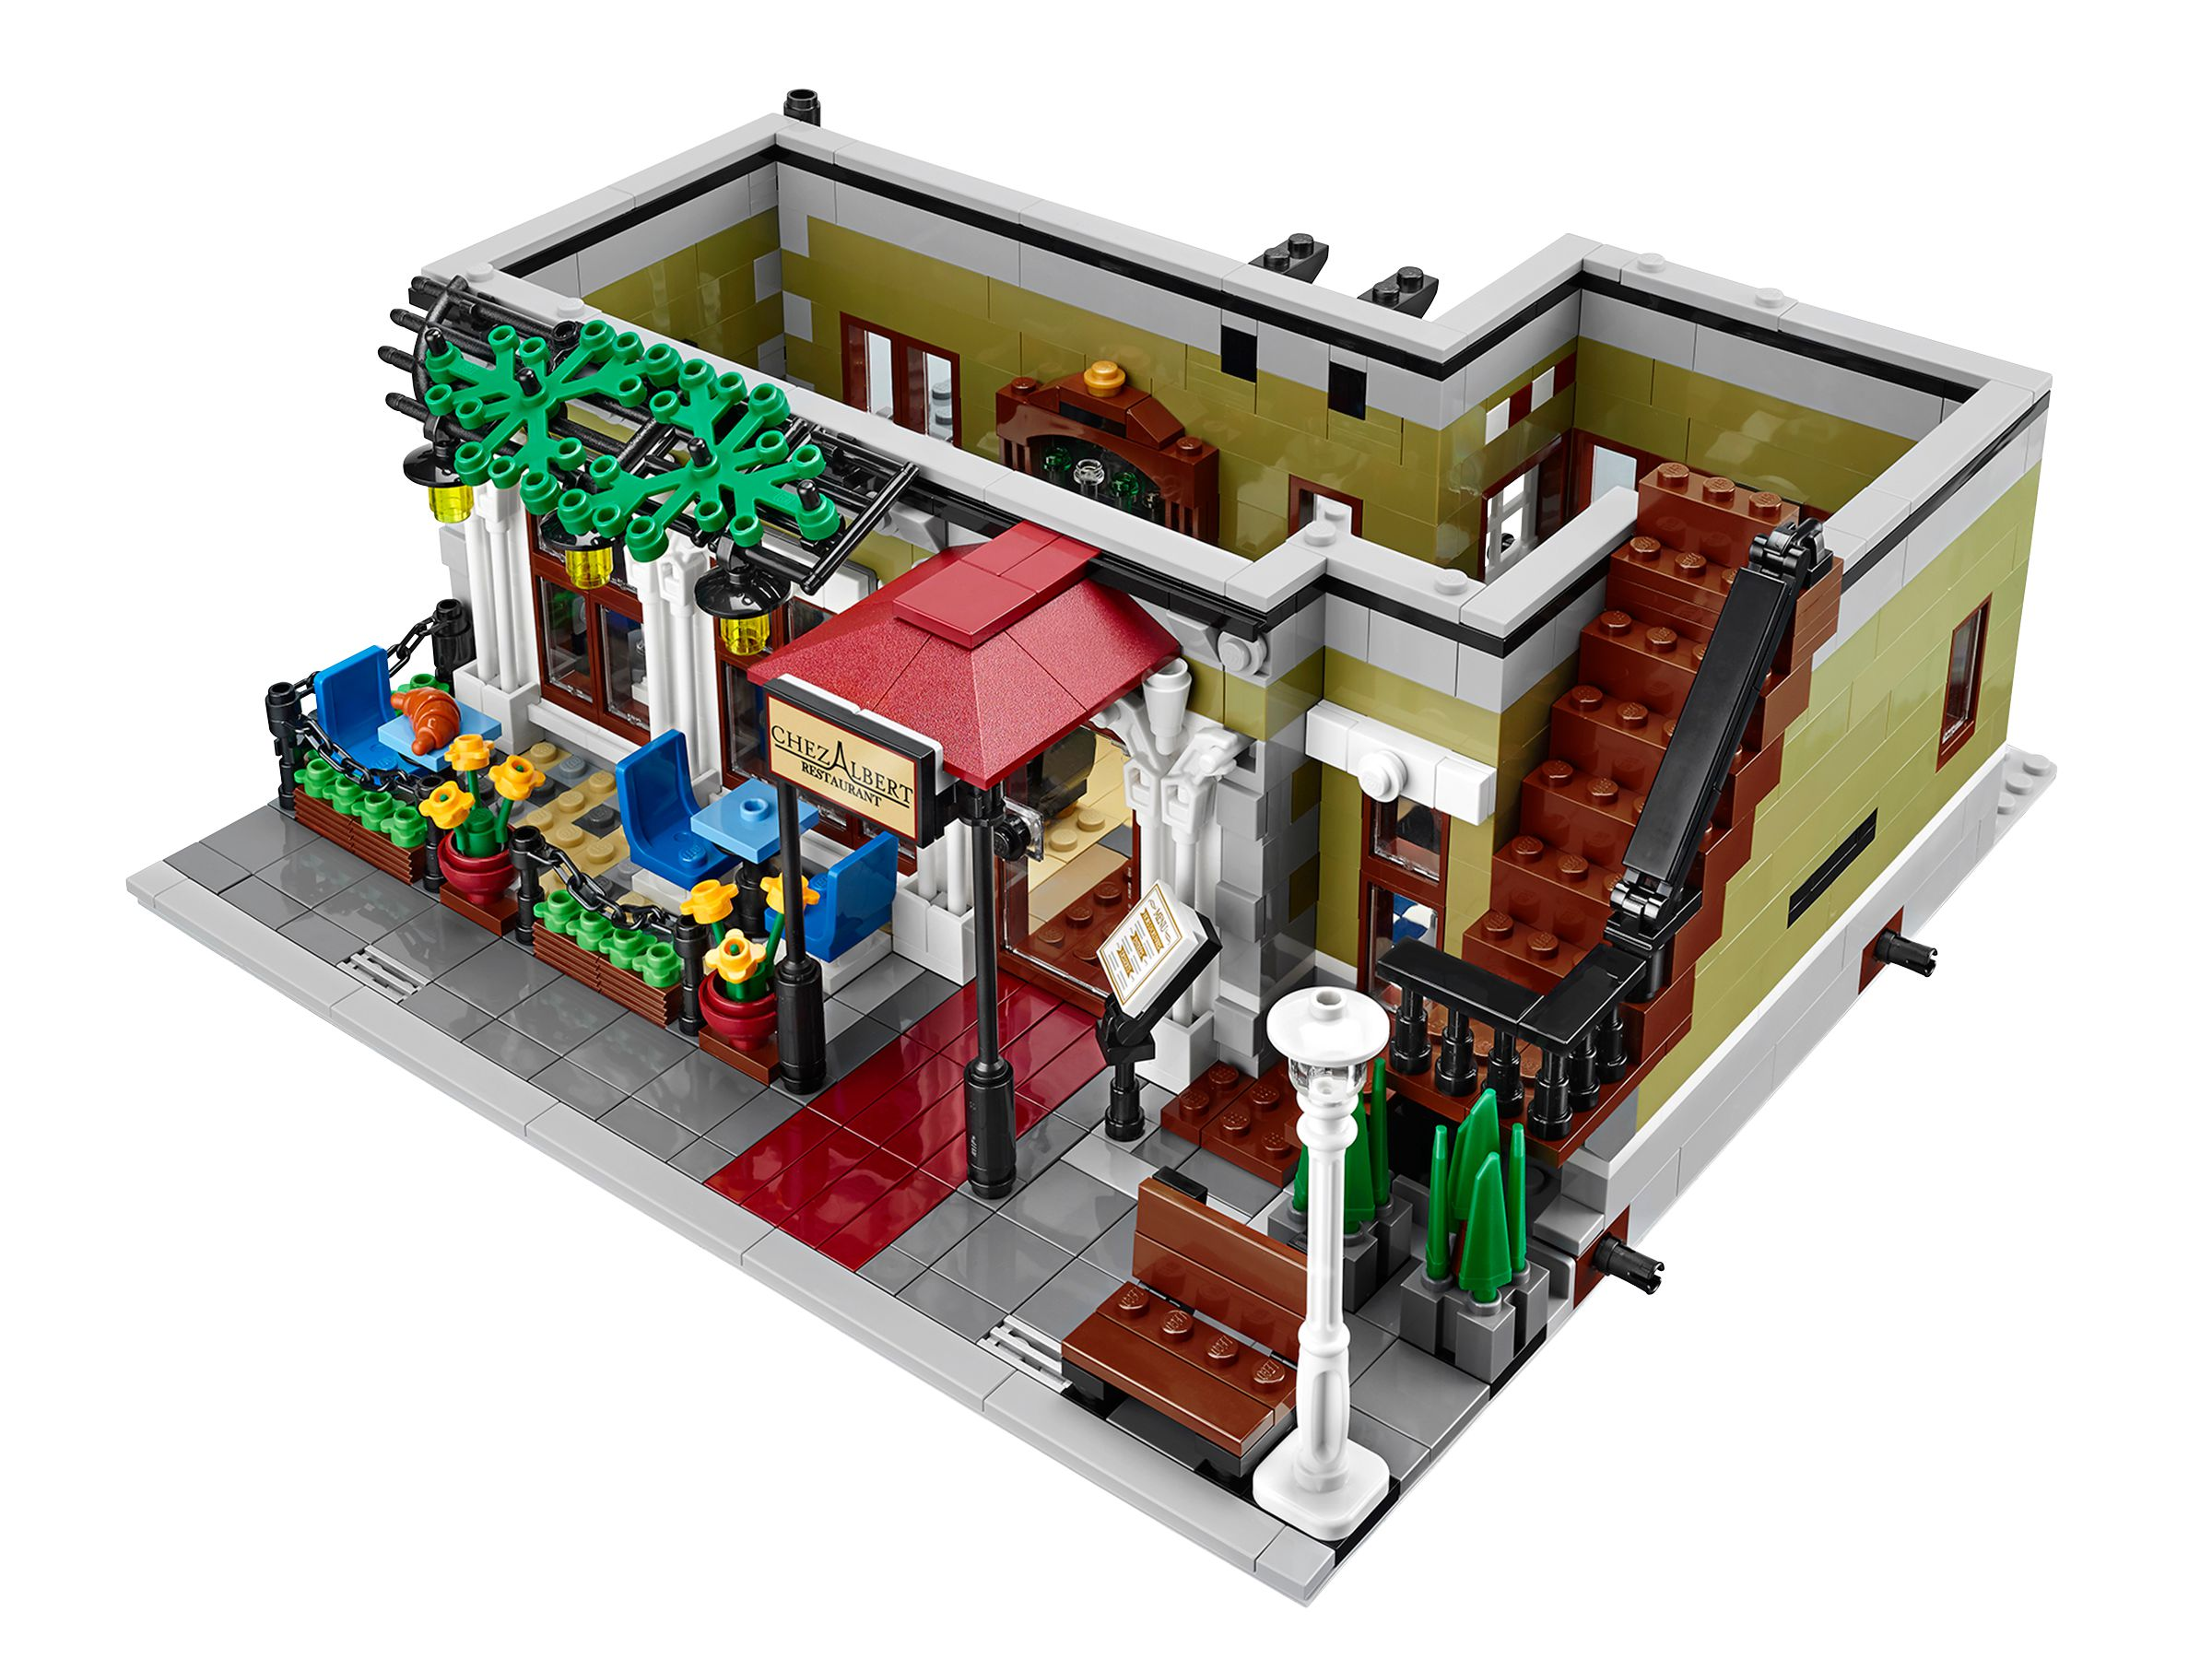 LEGO Advanced Models 10243 Pariser Restaurant LEGO_10243_alt5.jpg